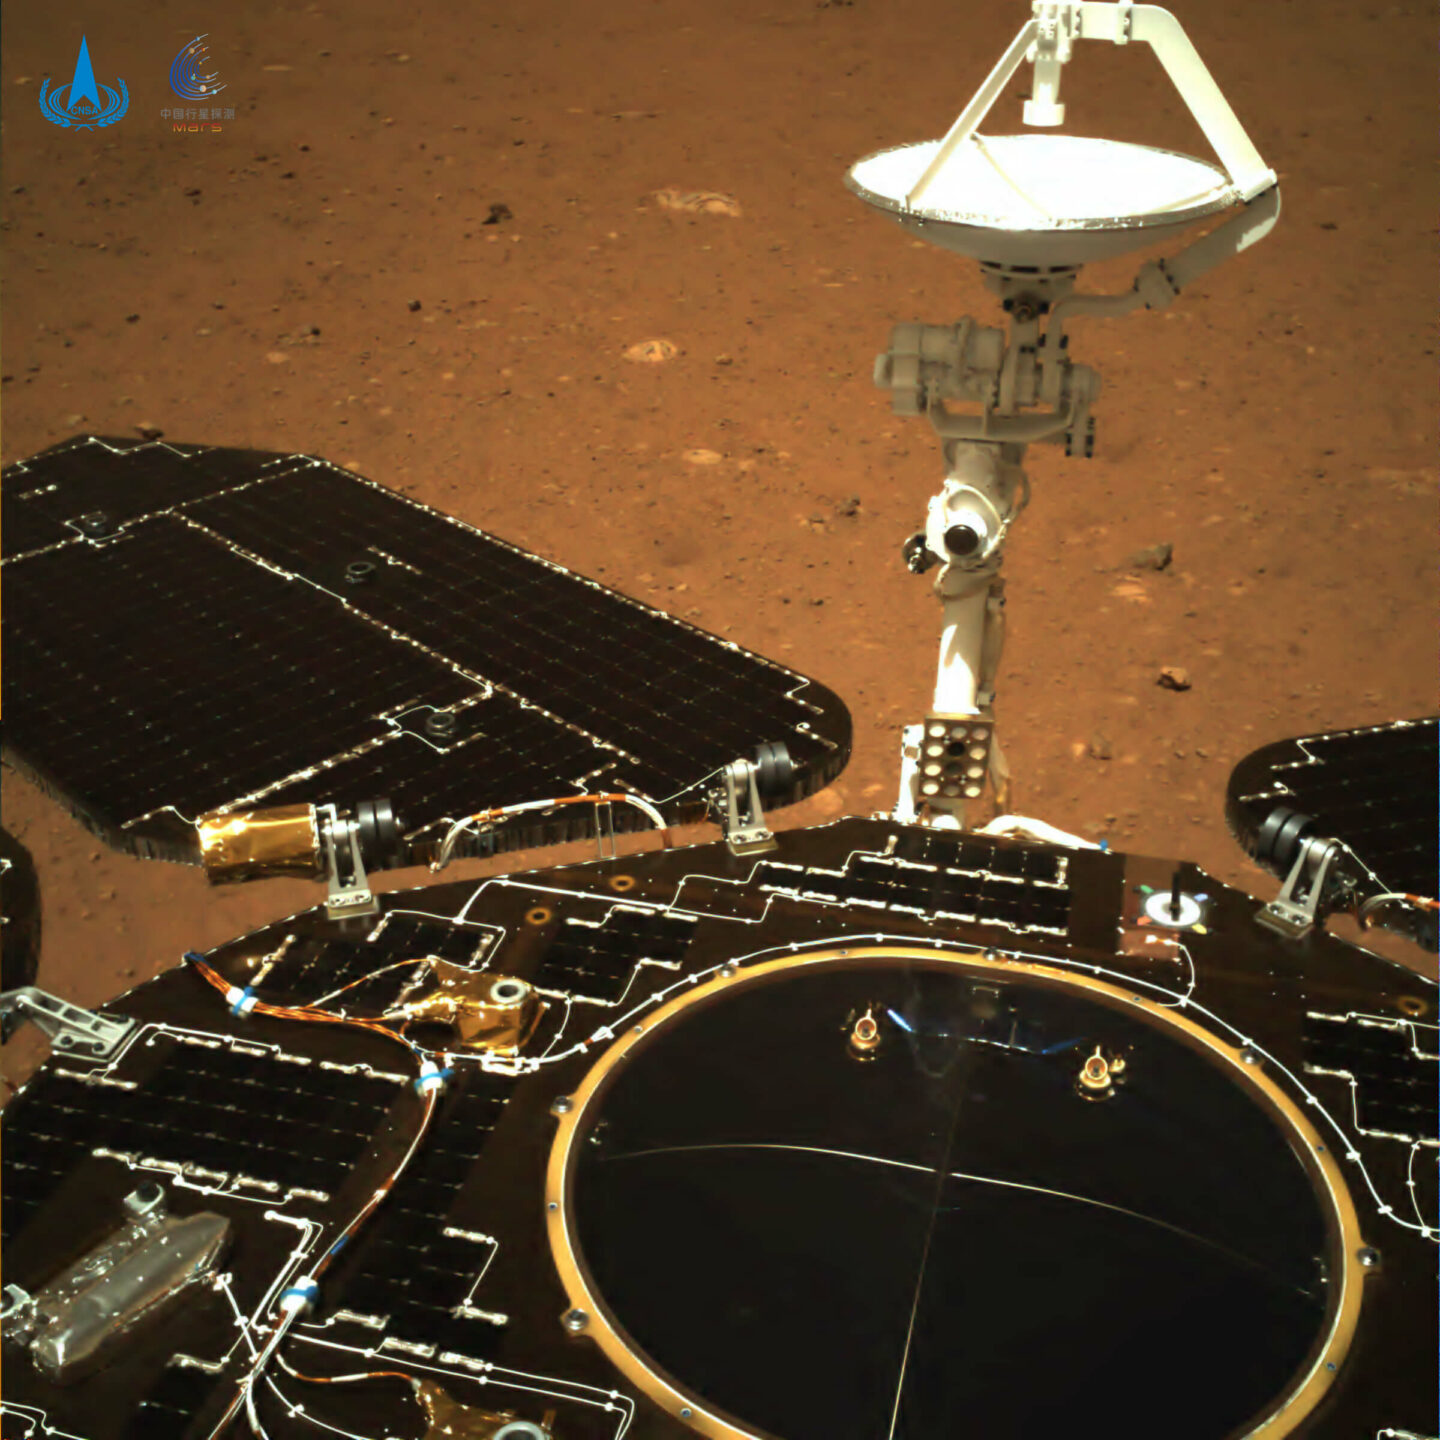 A machine with wings and a satellite. It is black. There is red soil in the background